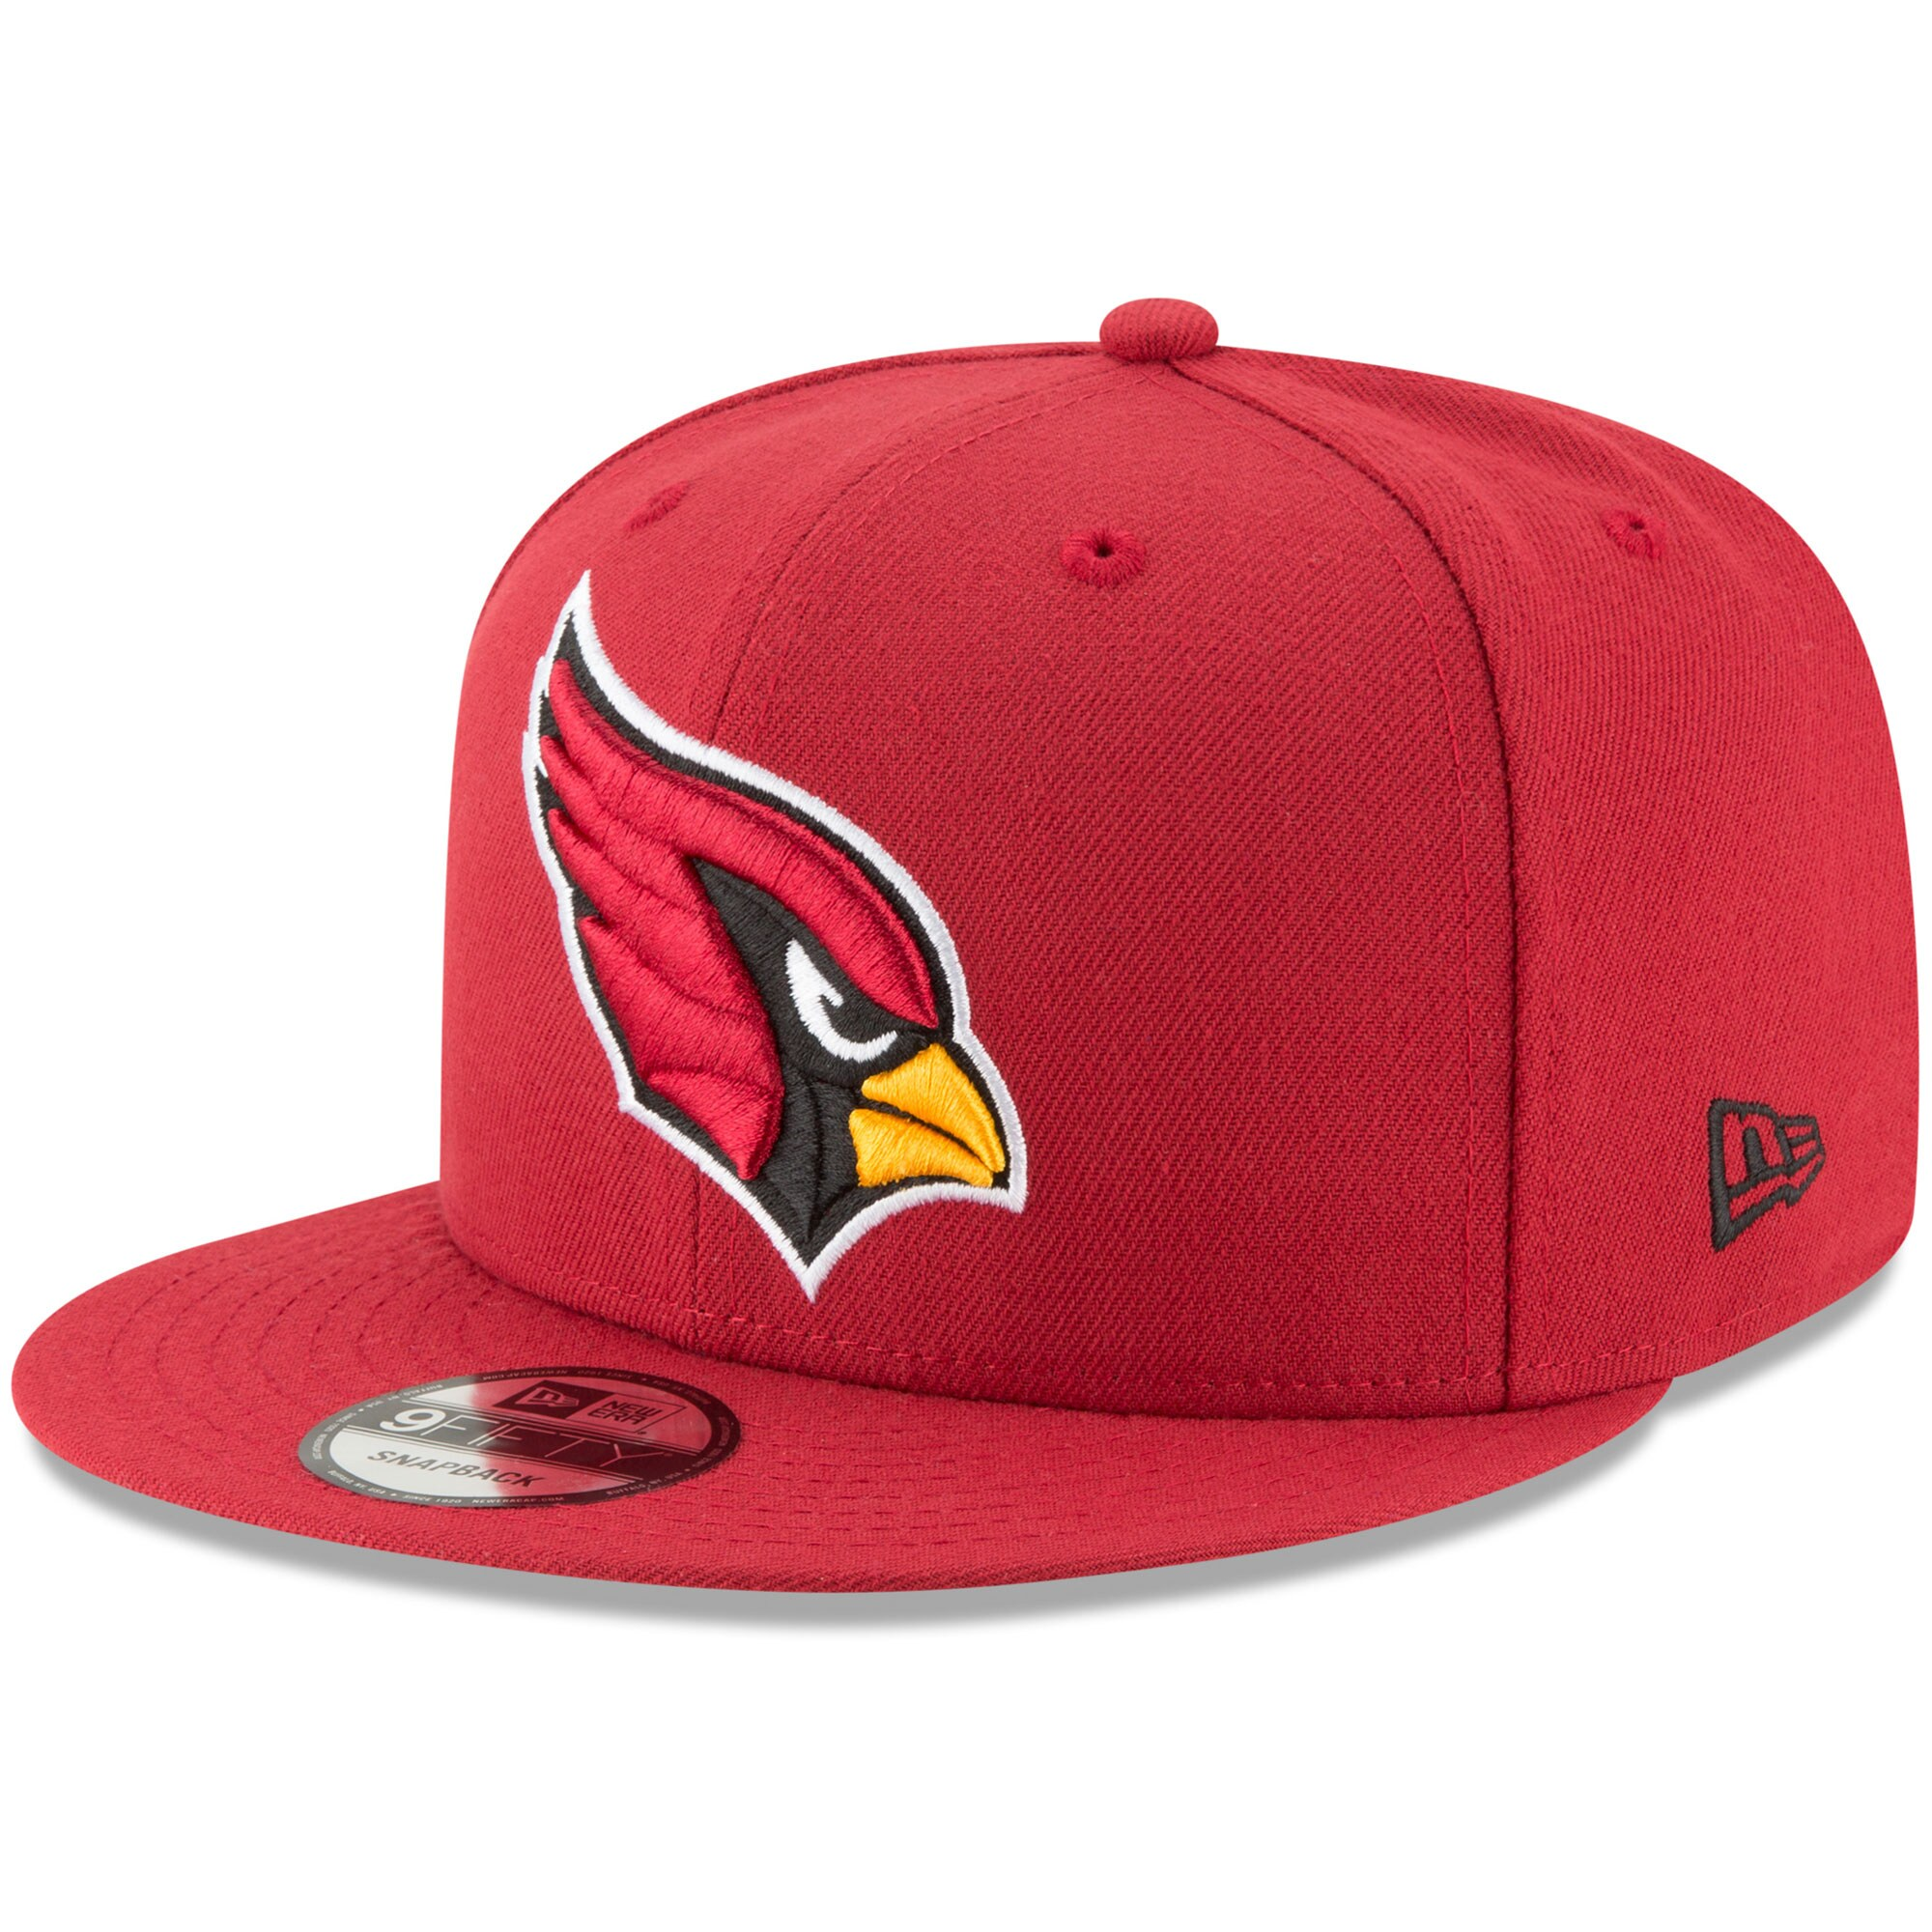 Arizona Cardinals New Era Basic 9FIFTY Adjustable Snapback Hat - Cardinal